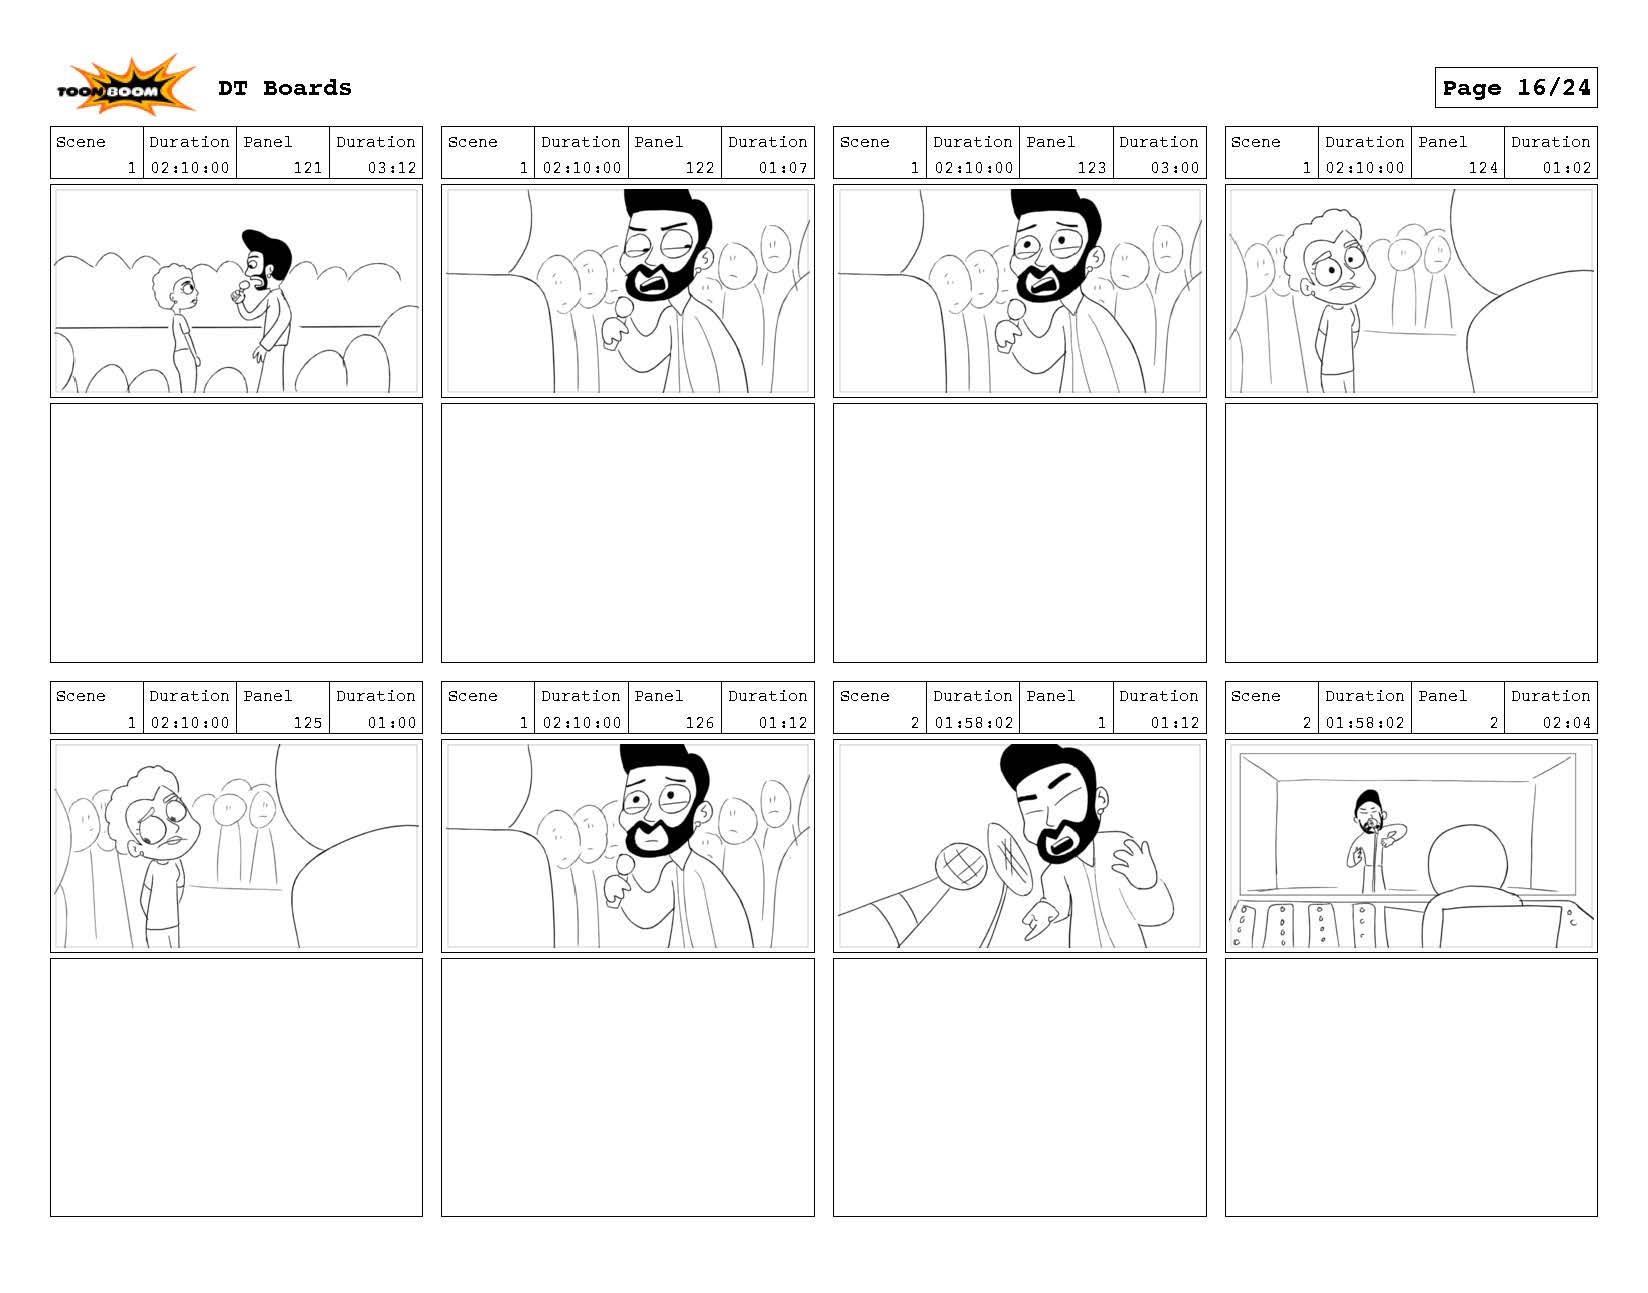 Boards2_Page_17.jpg